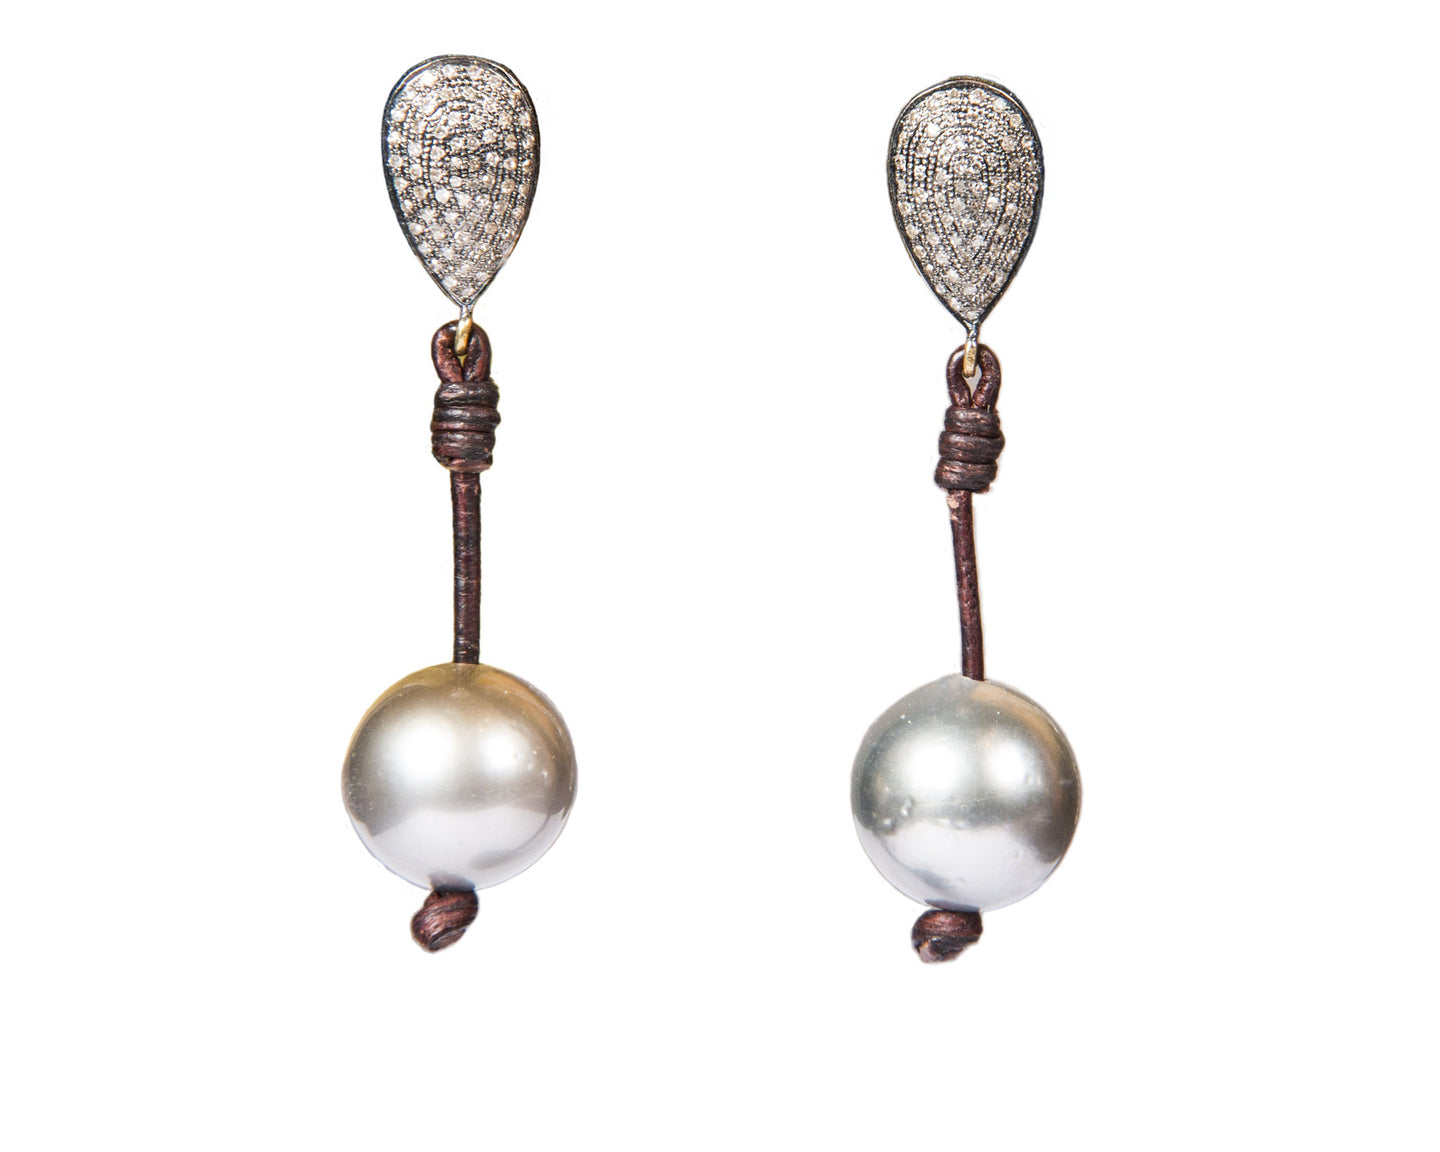 Demure Teardrop Earrings